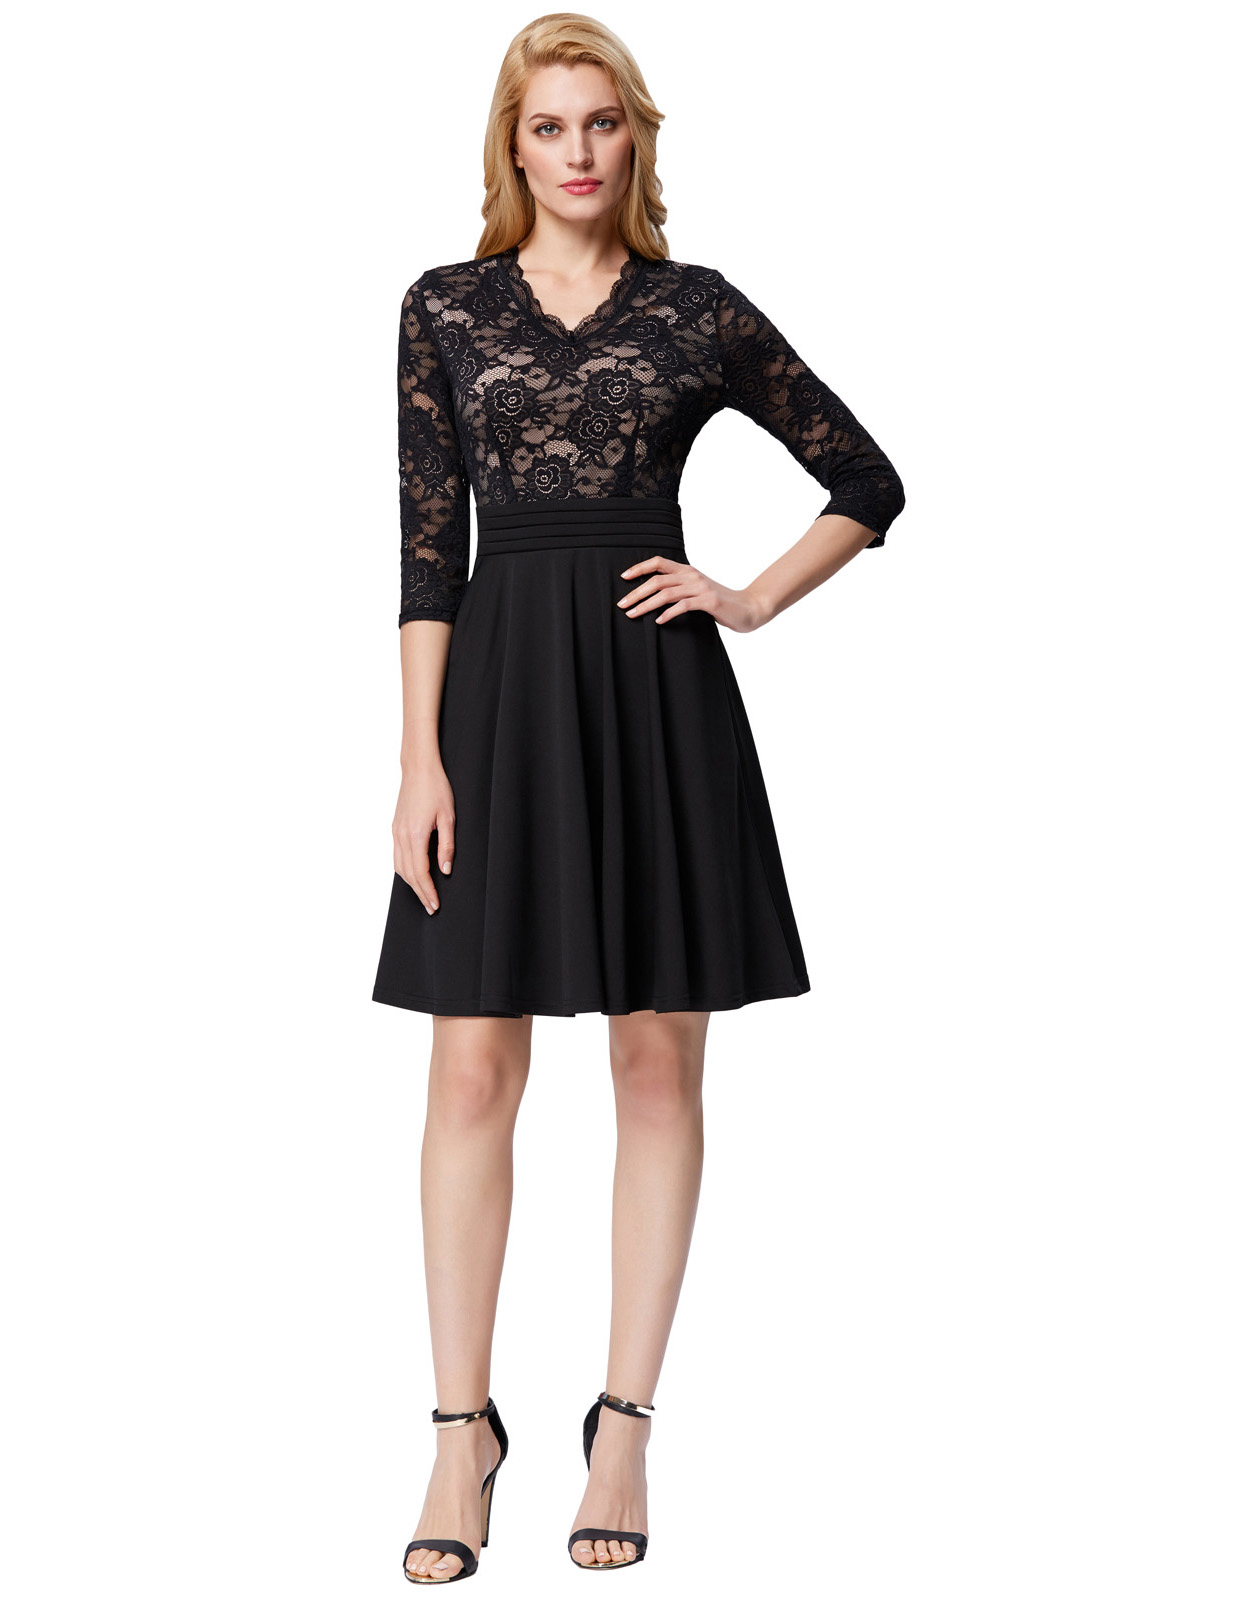 2018 Hot Sales Women Sexy V-neck Swing A-line Dresses Elegant Long Sleeve Party Retro Lace patchwork vintage Dress vestidos